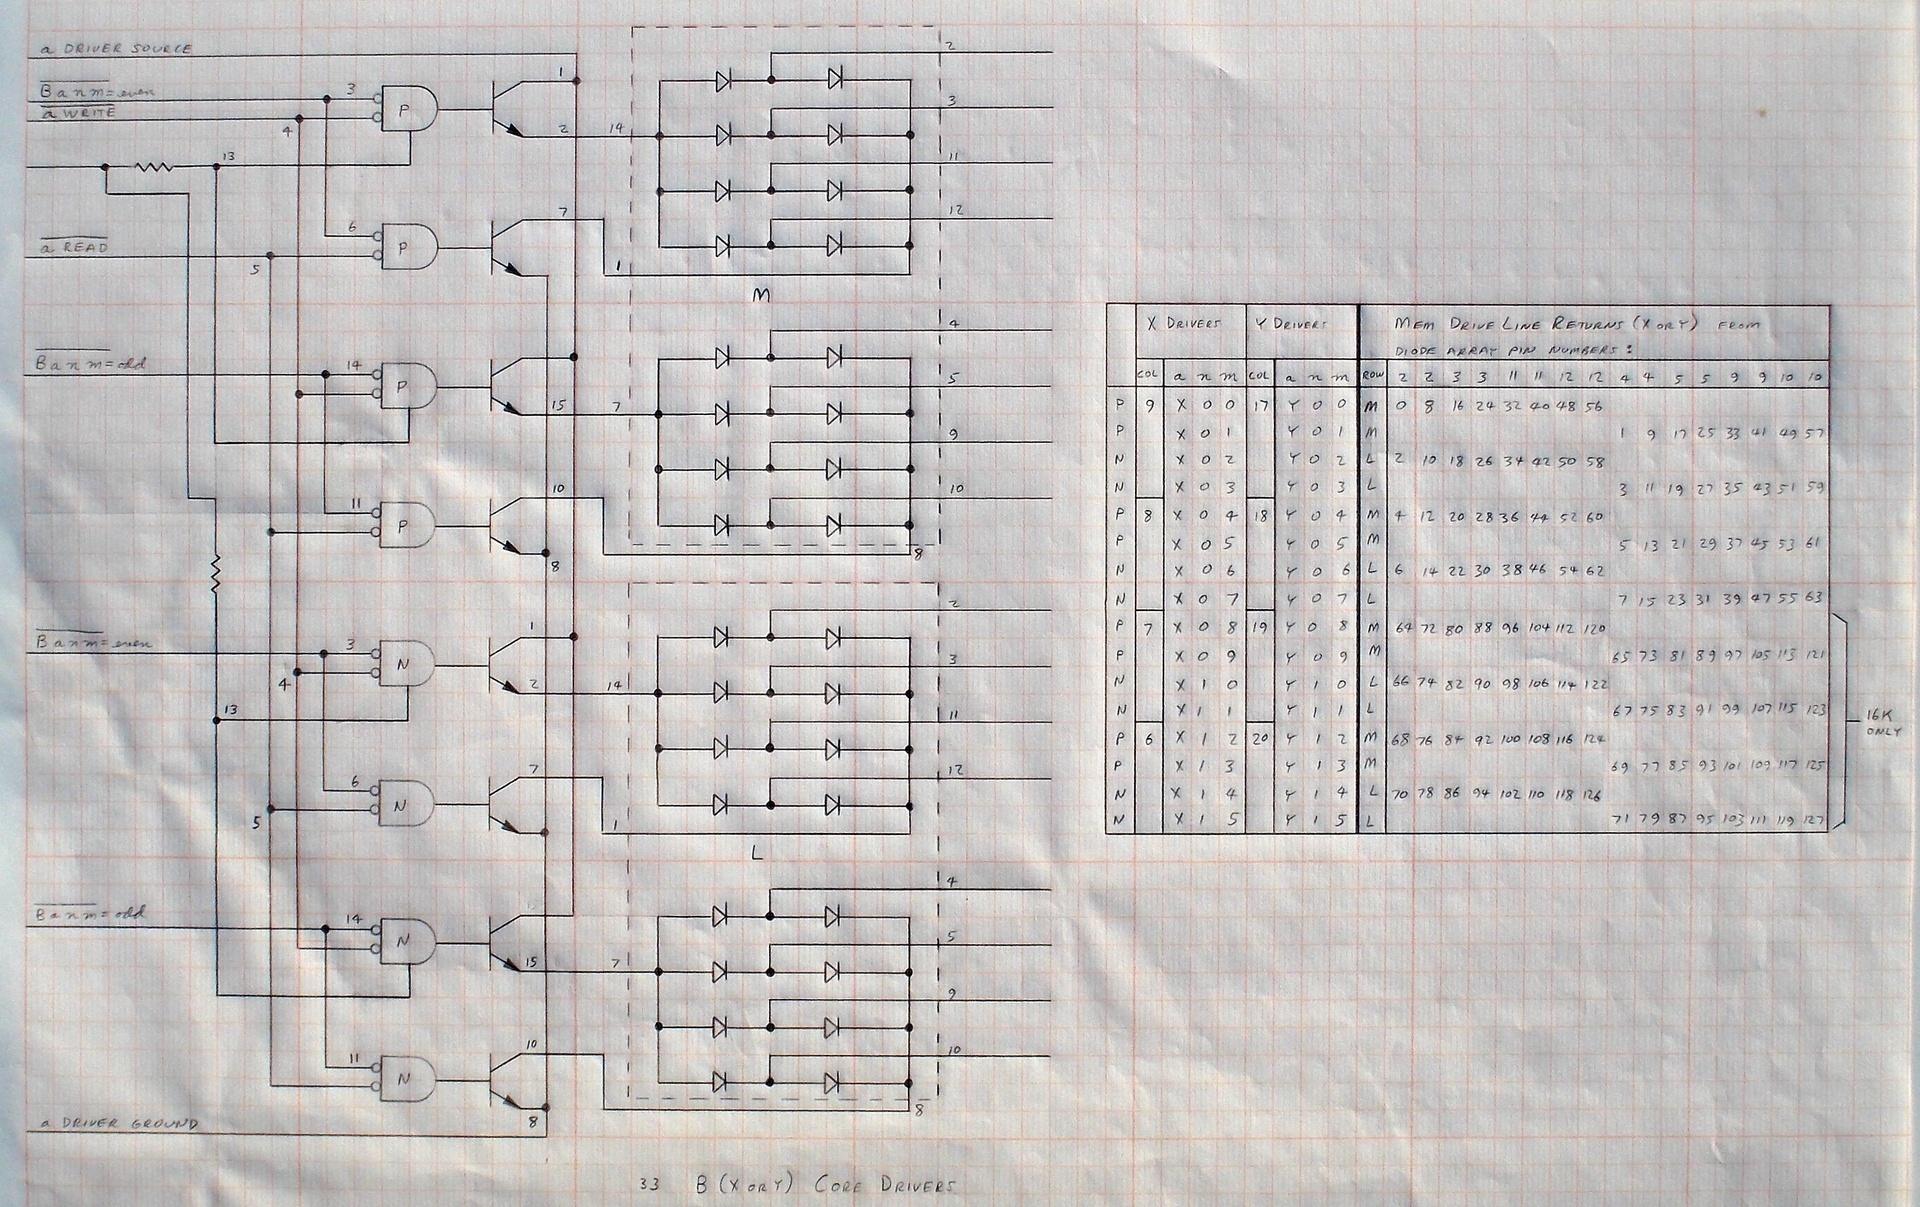 Ory Logic Diagram Continued Schematics Magnetic Core Memory Details Circuit